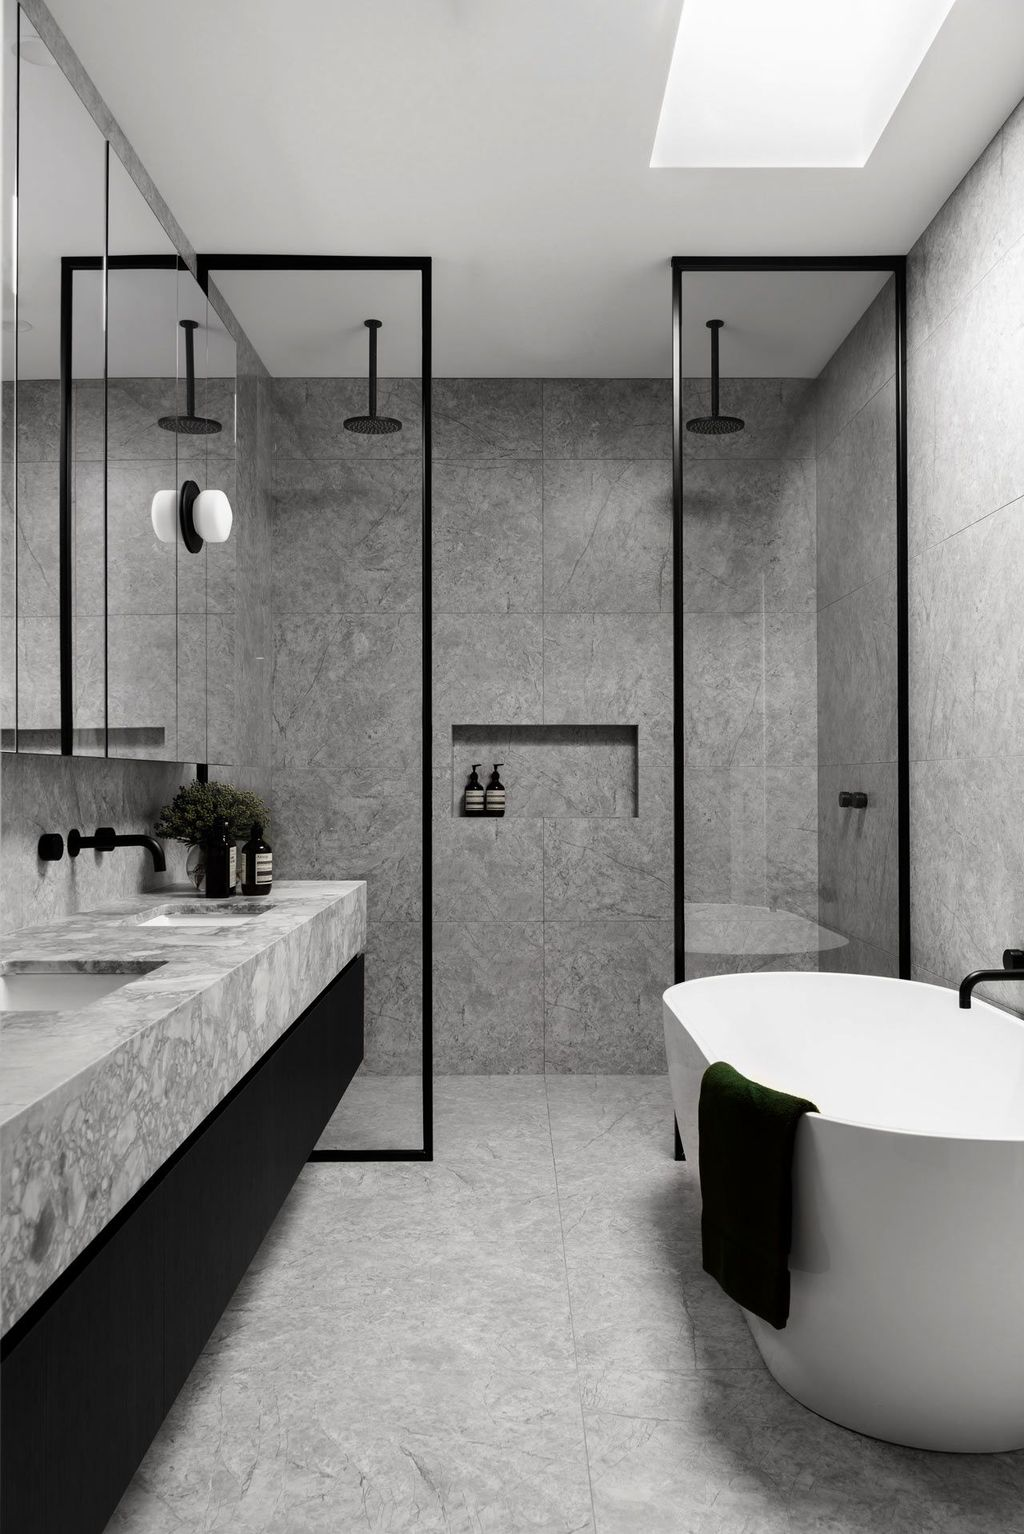 Inspiring Bathroom Interior Design Ideas 14